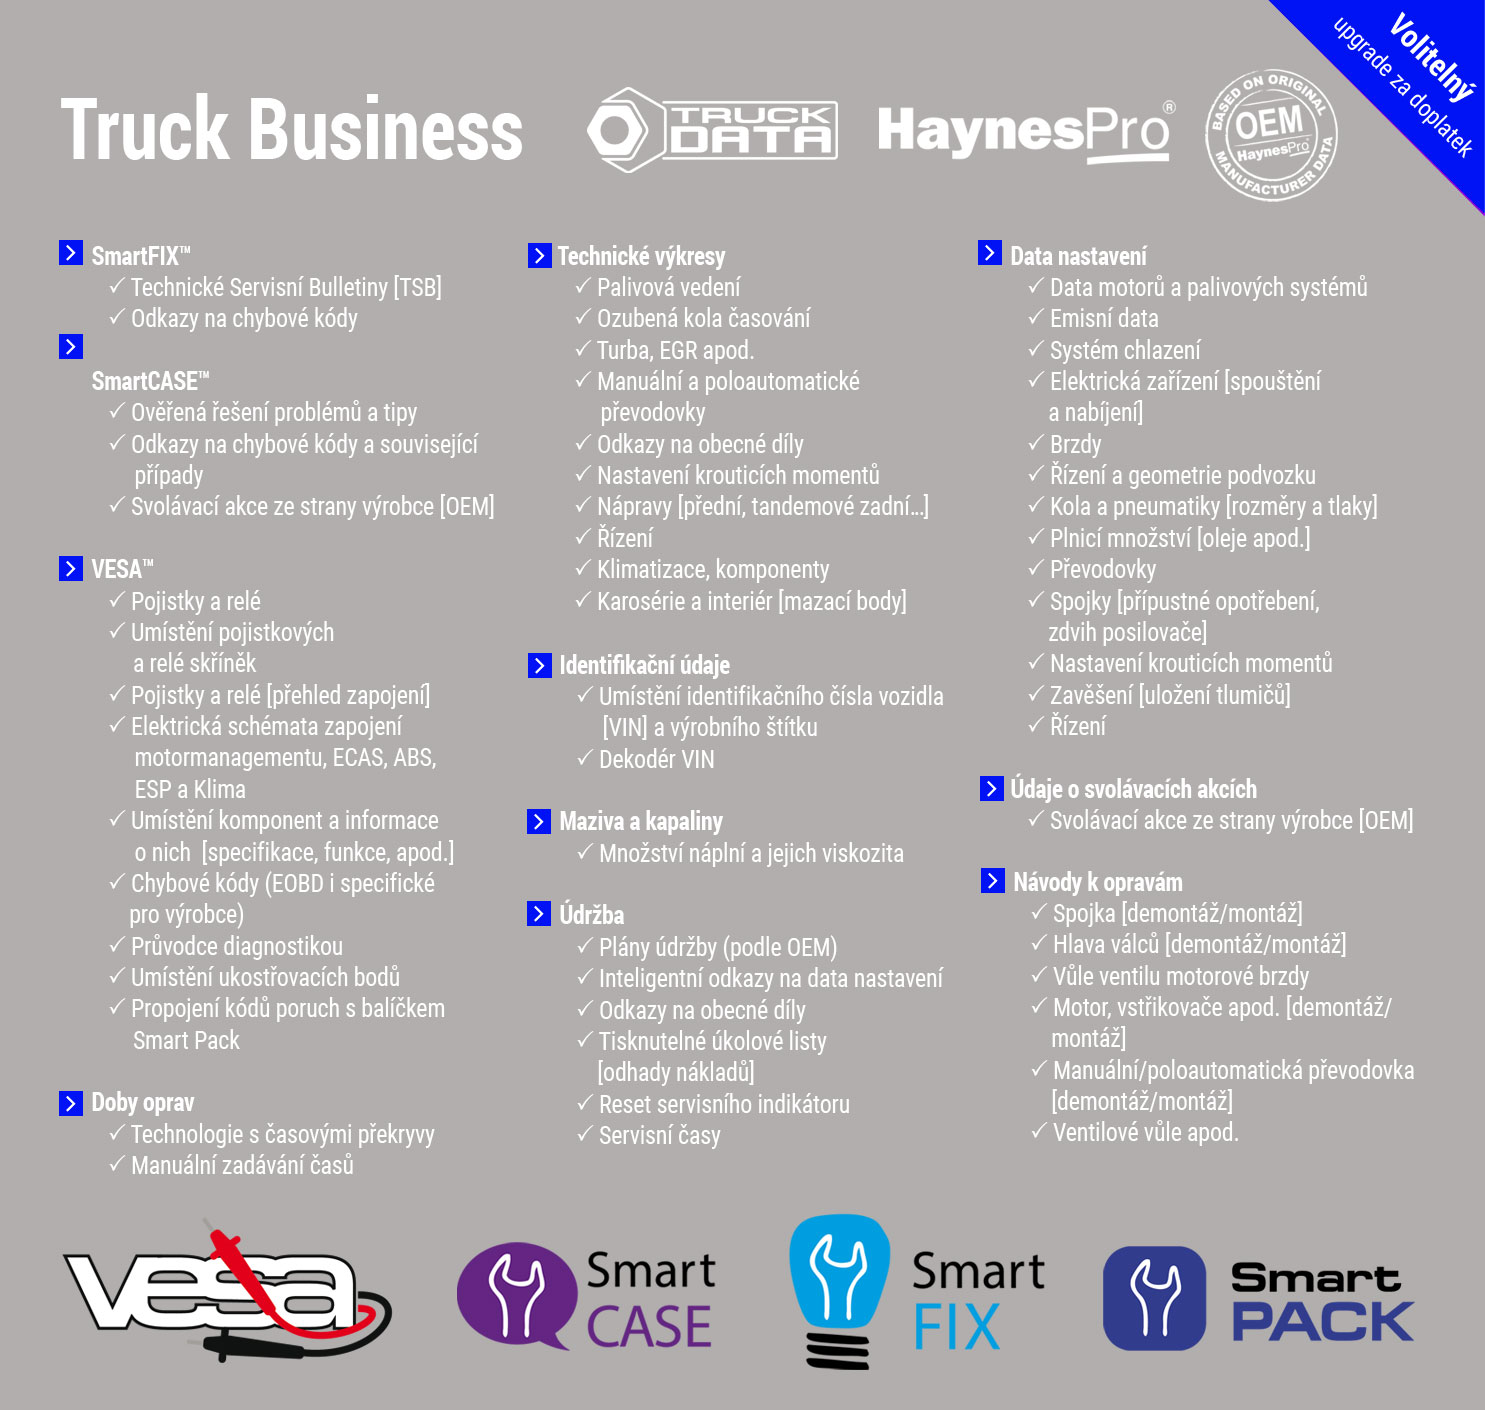 VTI Truck Busines